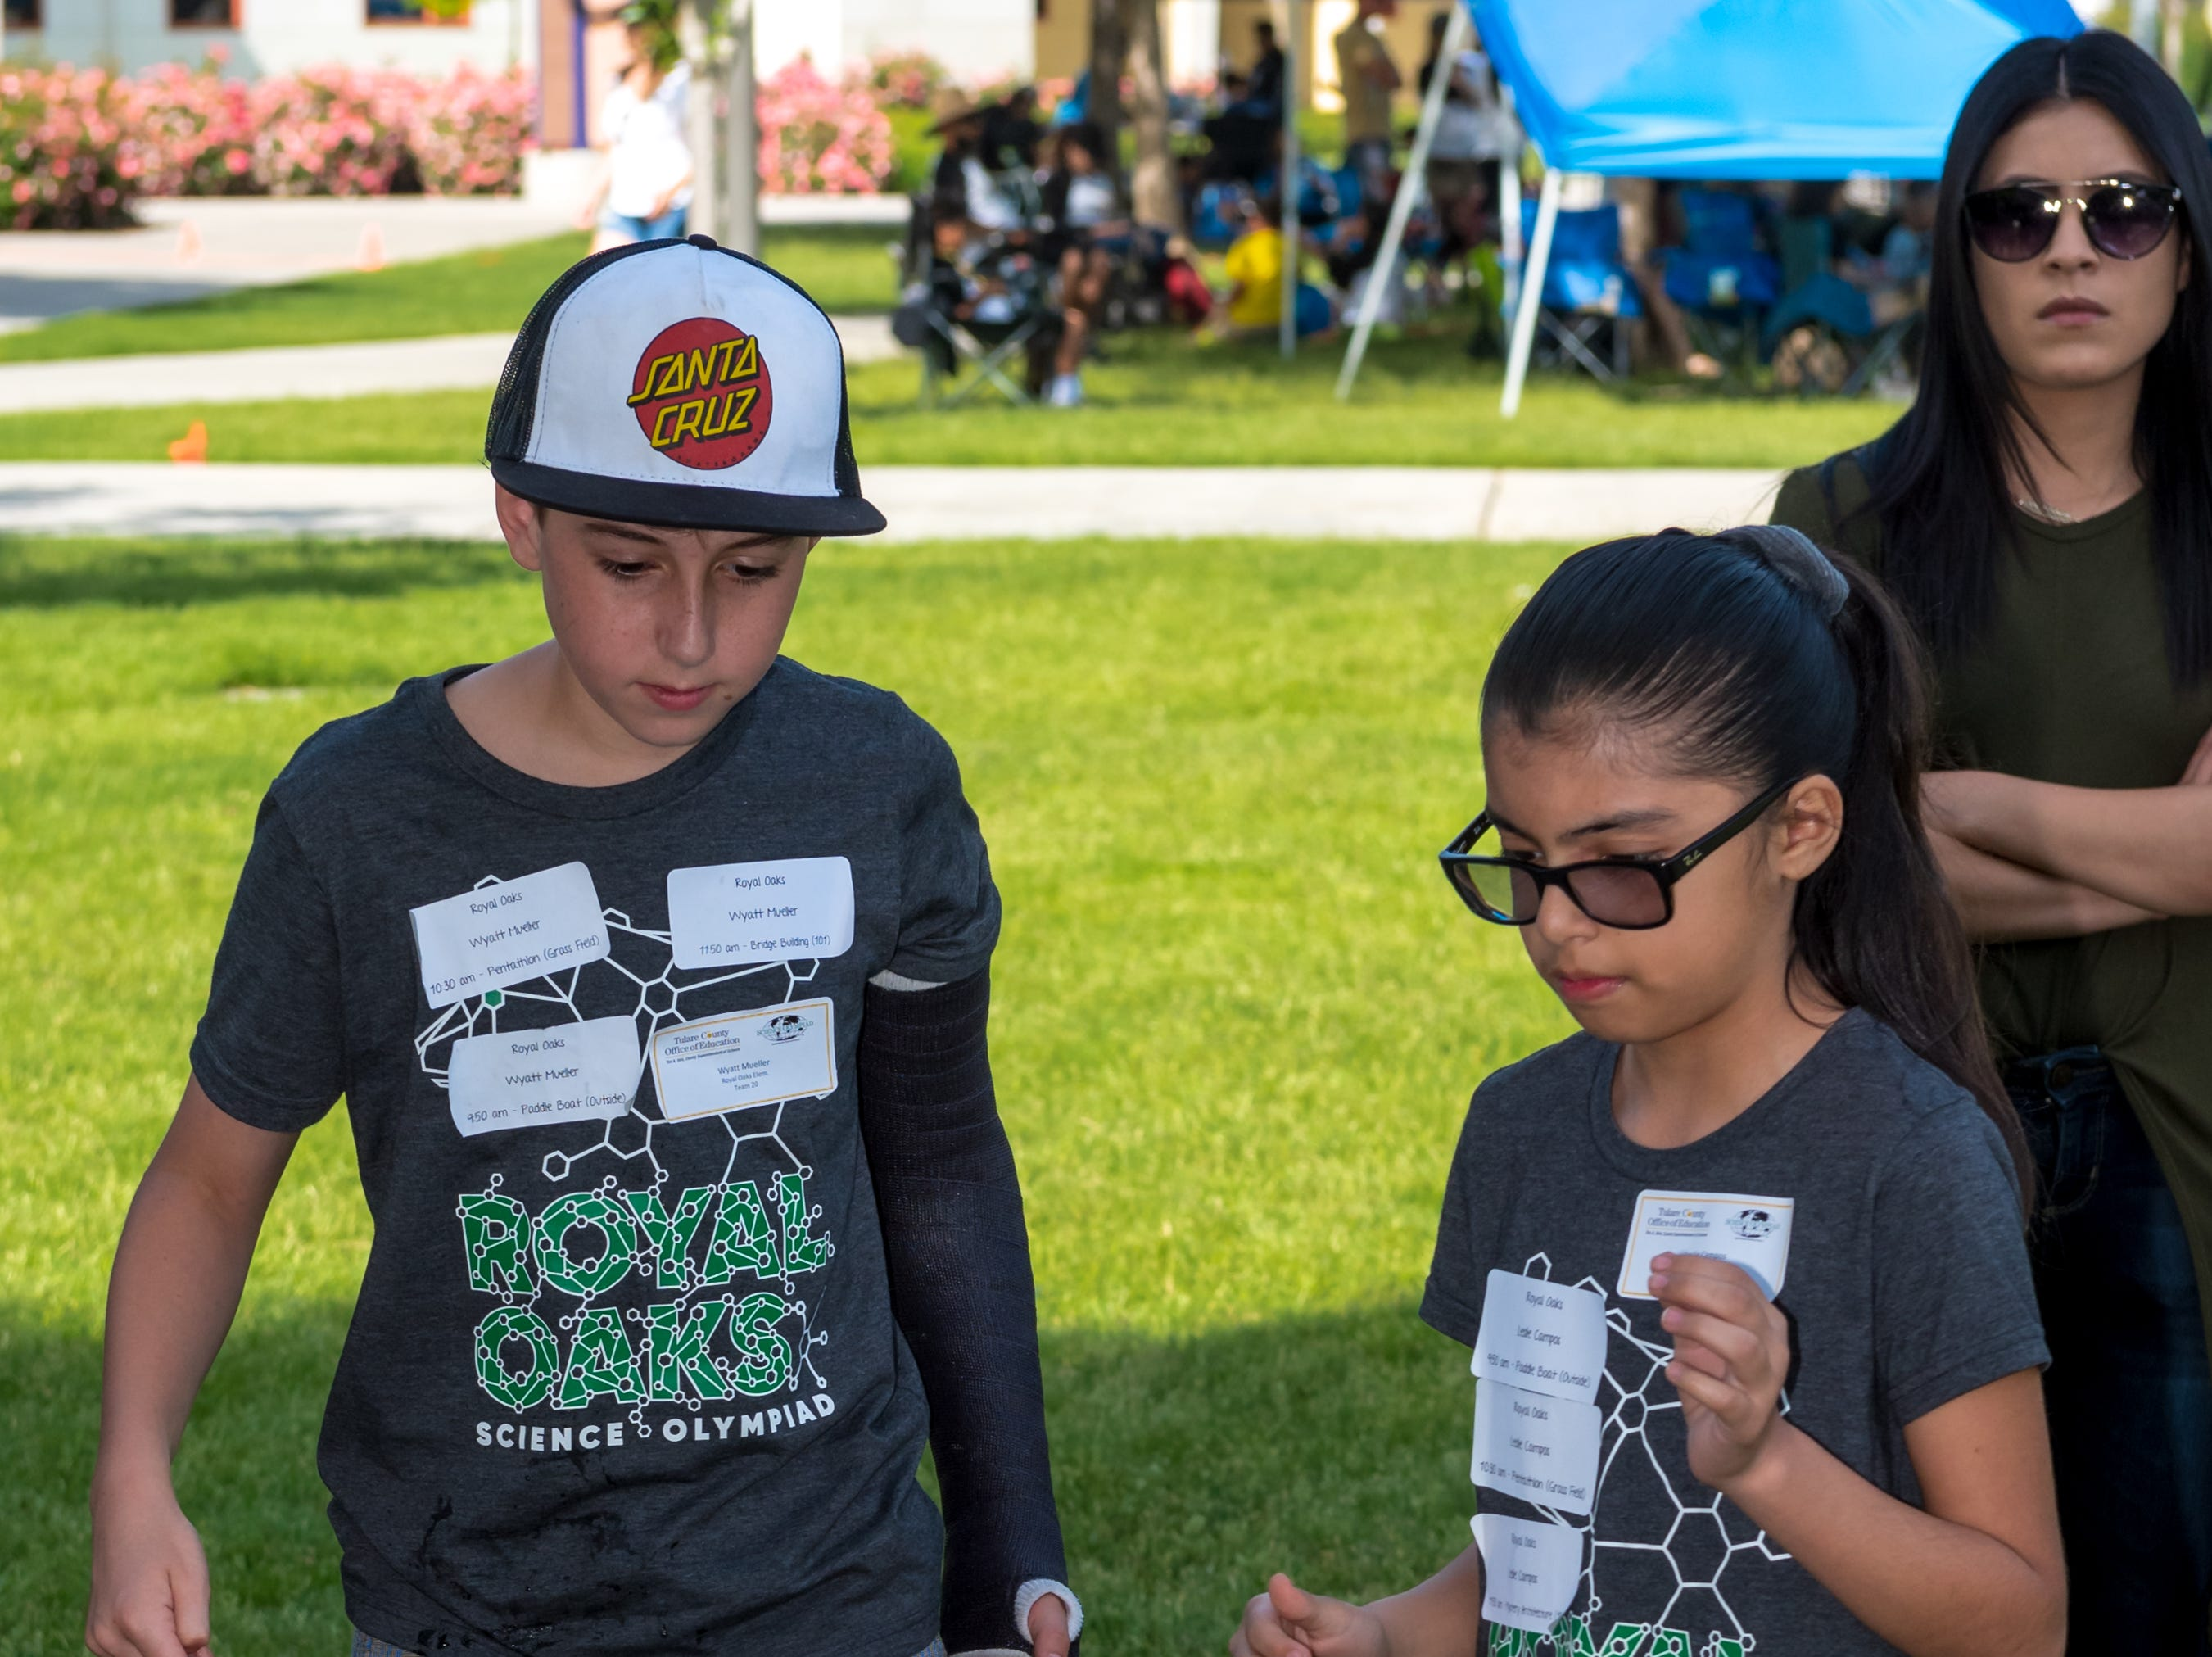 Wyatt Mueller and Leslie Campos from Royal Oaks Elementary School compete in the Boat Race at the Science Olympiad held at Mission Oak High School in Tulare, Saturday, April. 27, 2019.